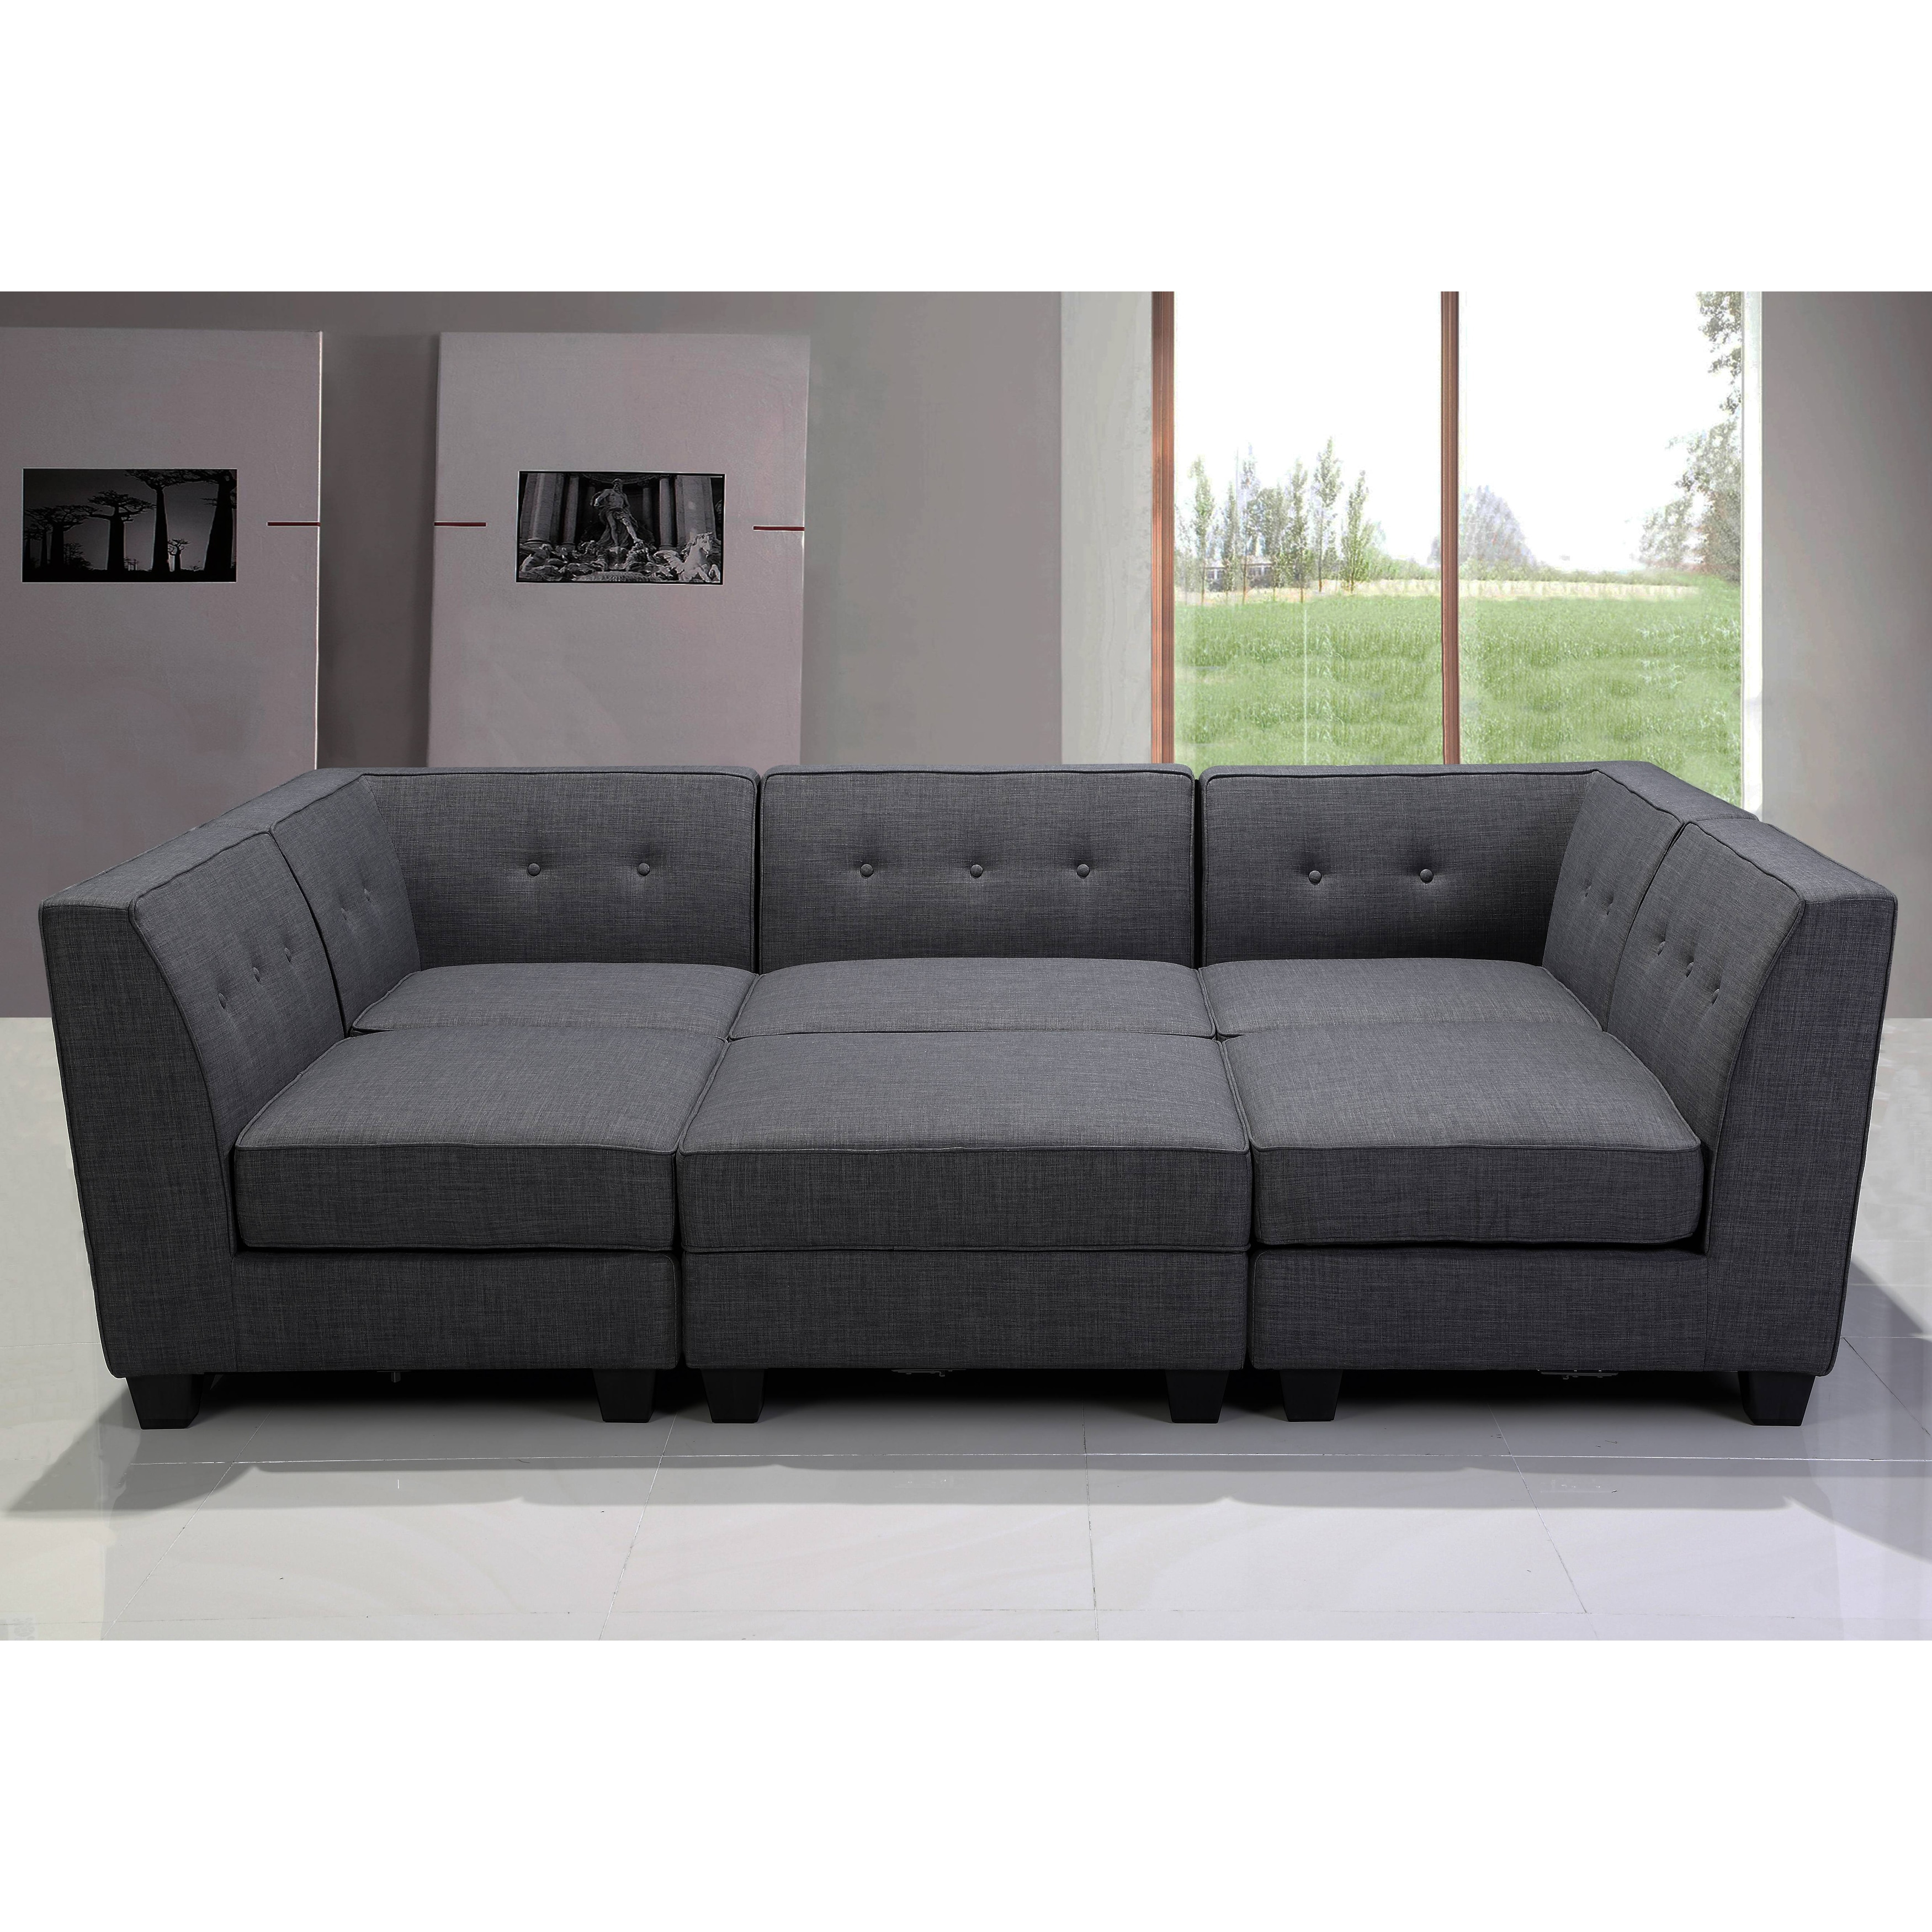 Best Master Furniture 6 Piece Grey Modular Sectional Sofa On Sale Overstock 19873476